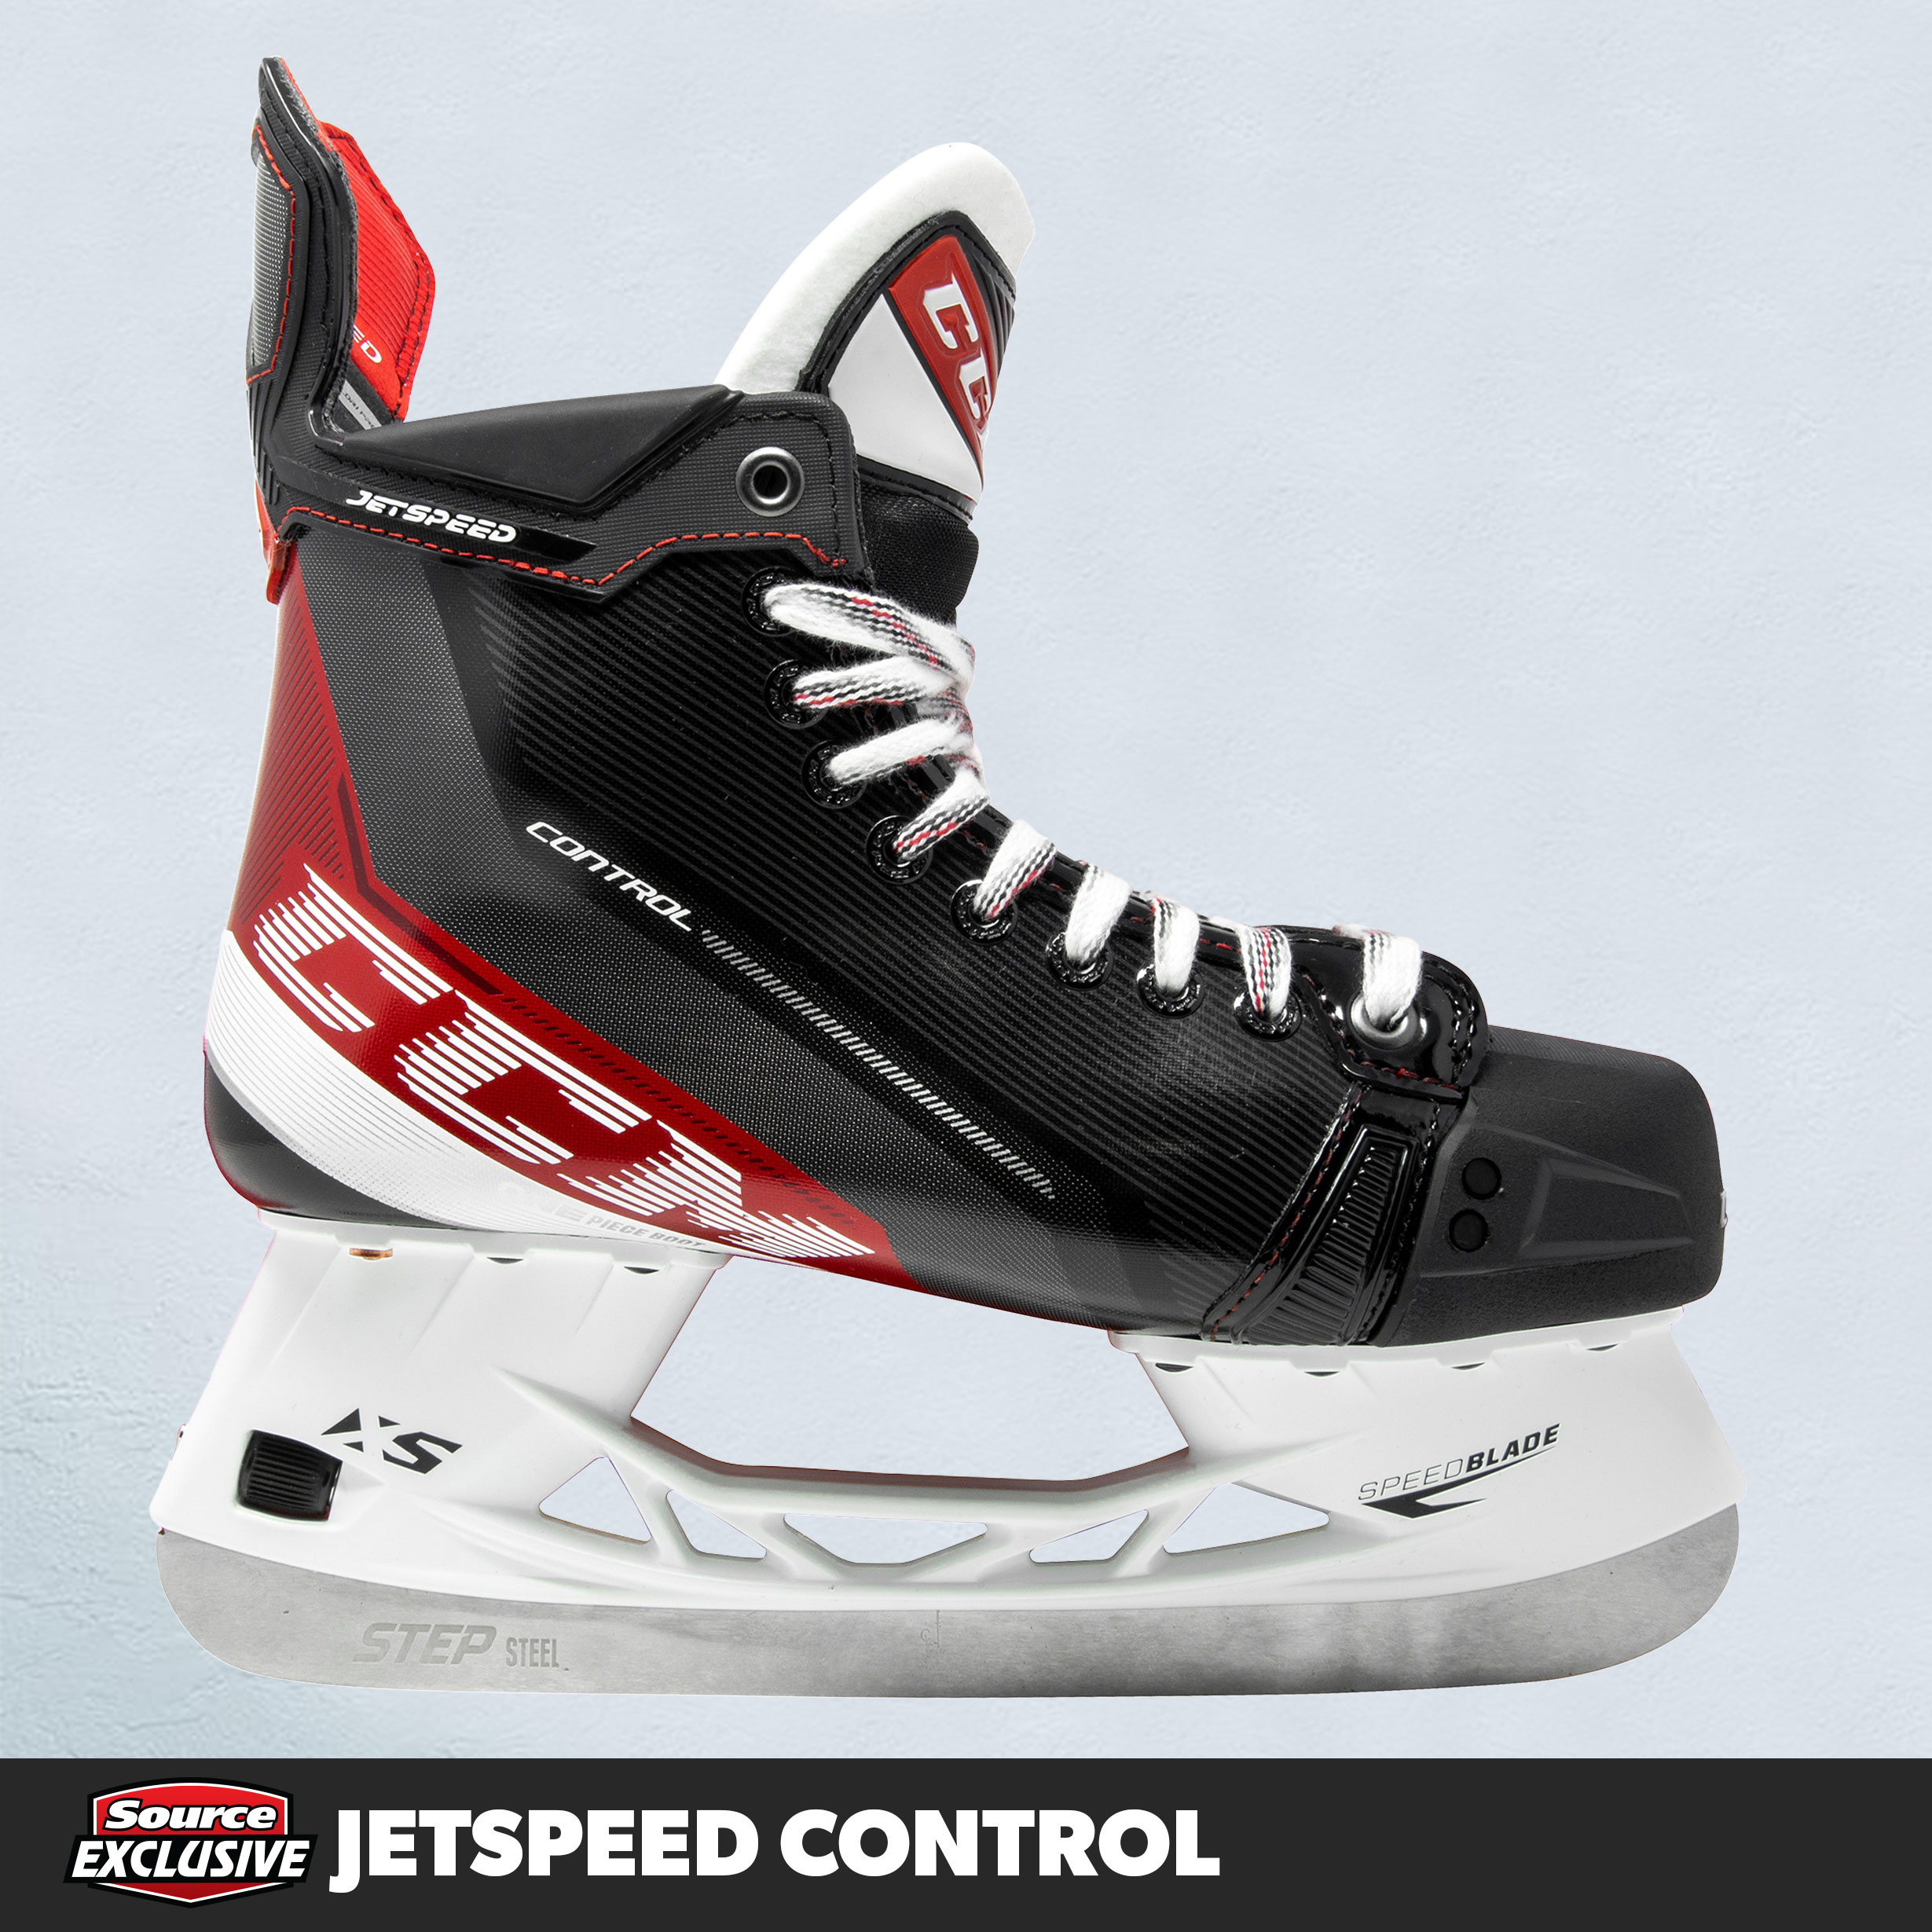 CCM JetSpeed Skates Available Only At Source For Sports